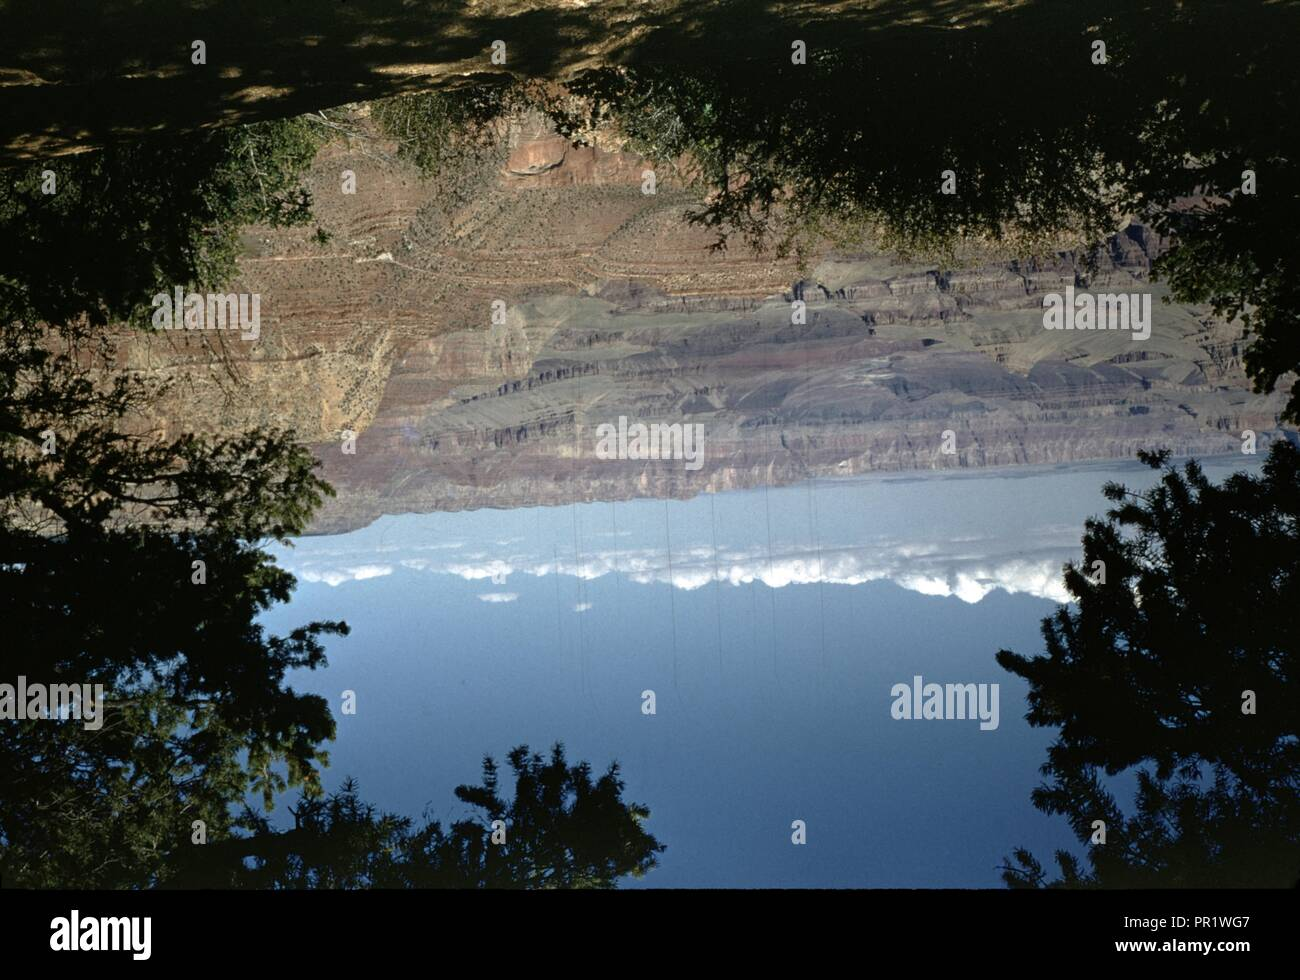 Natural Scenery, Photos Include Mountains, Blue Sky Visionary, Image With Tree And Mountain, Echo Image, 1955. () - Stock Image